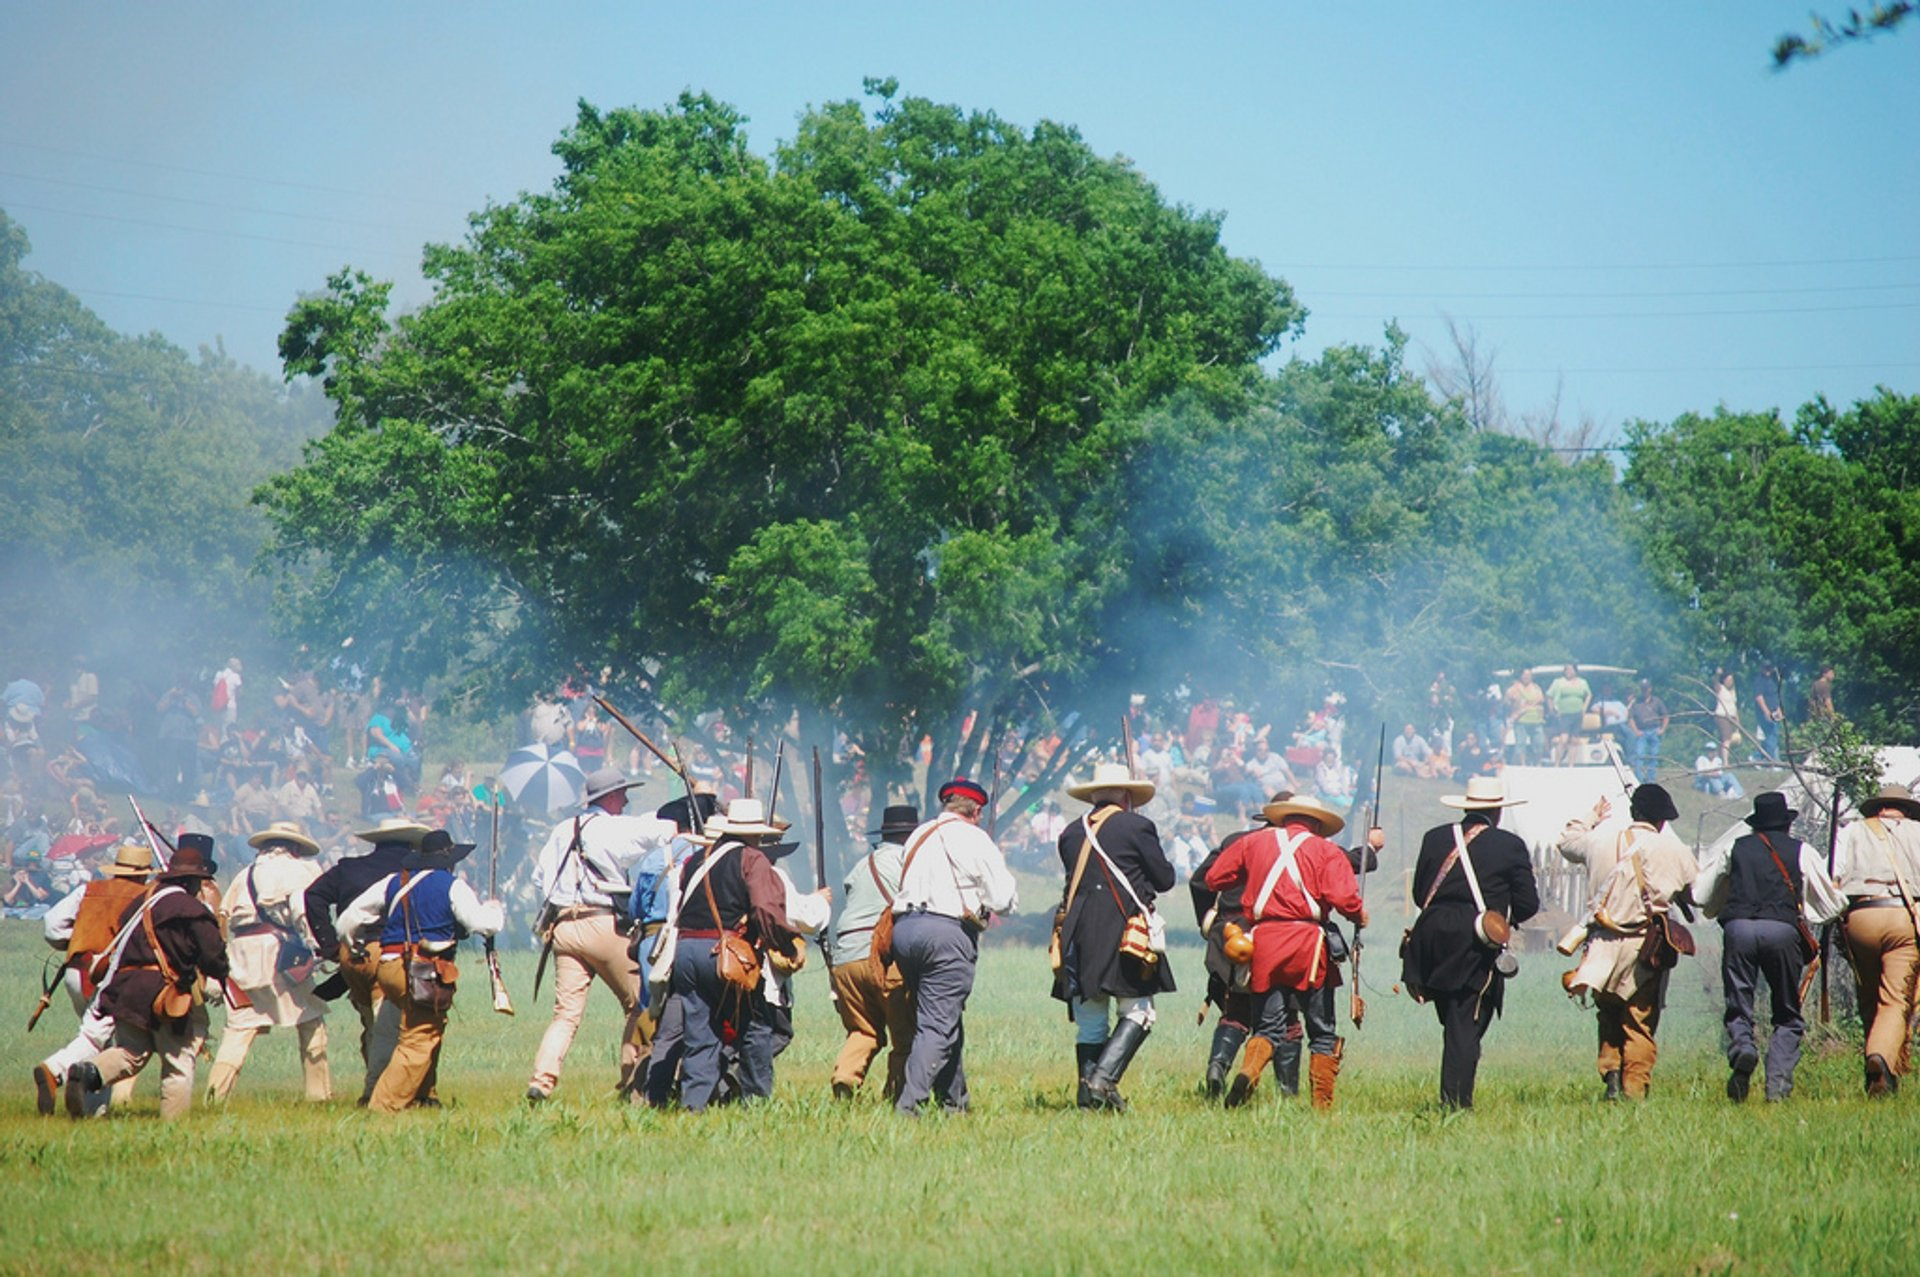 Texas Independence Re-enactment 2020